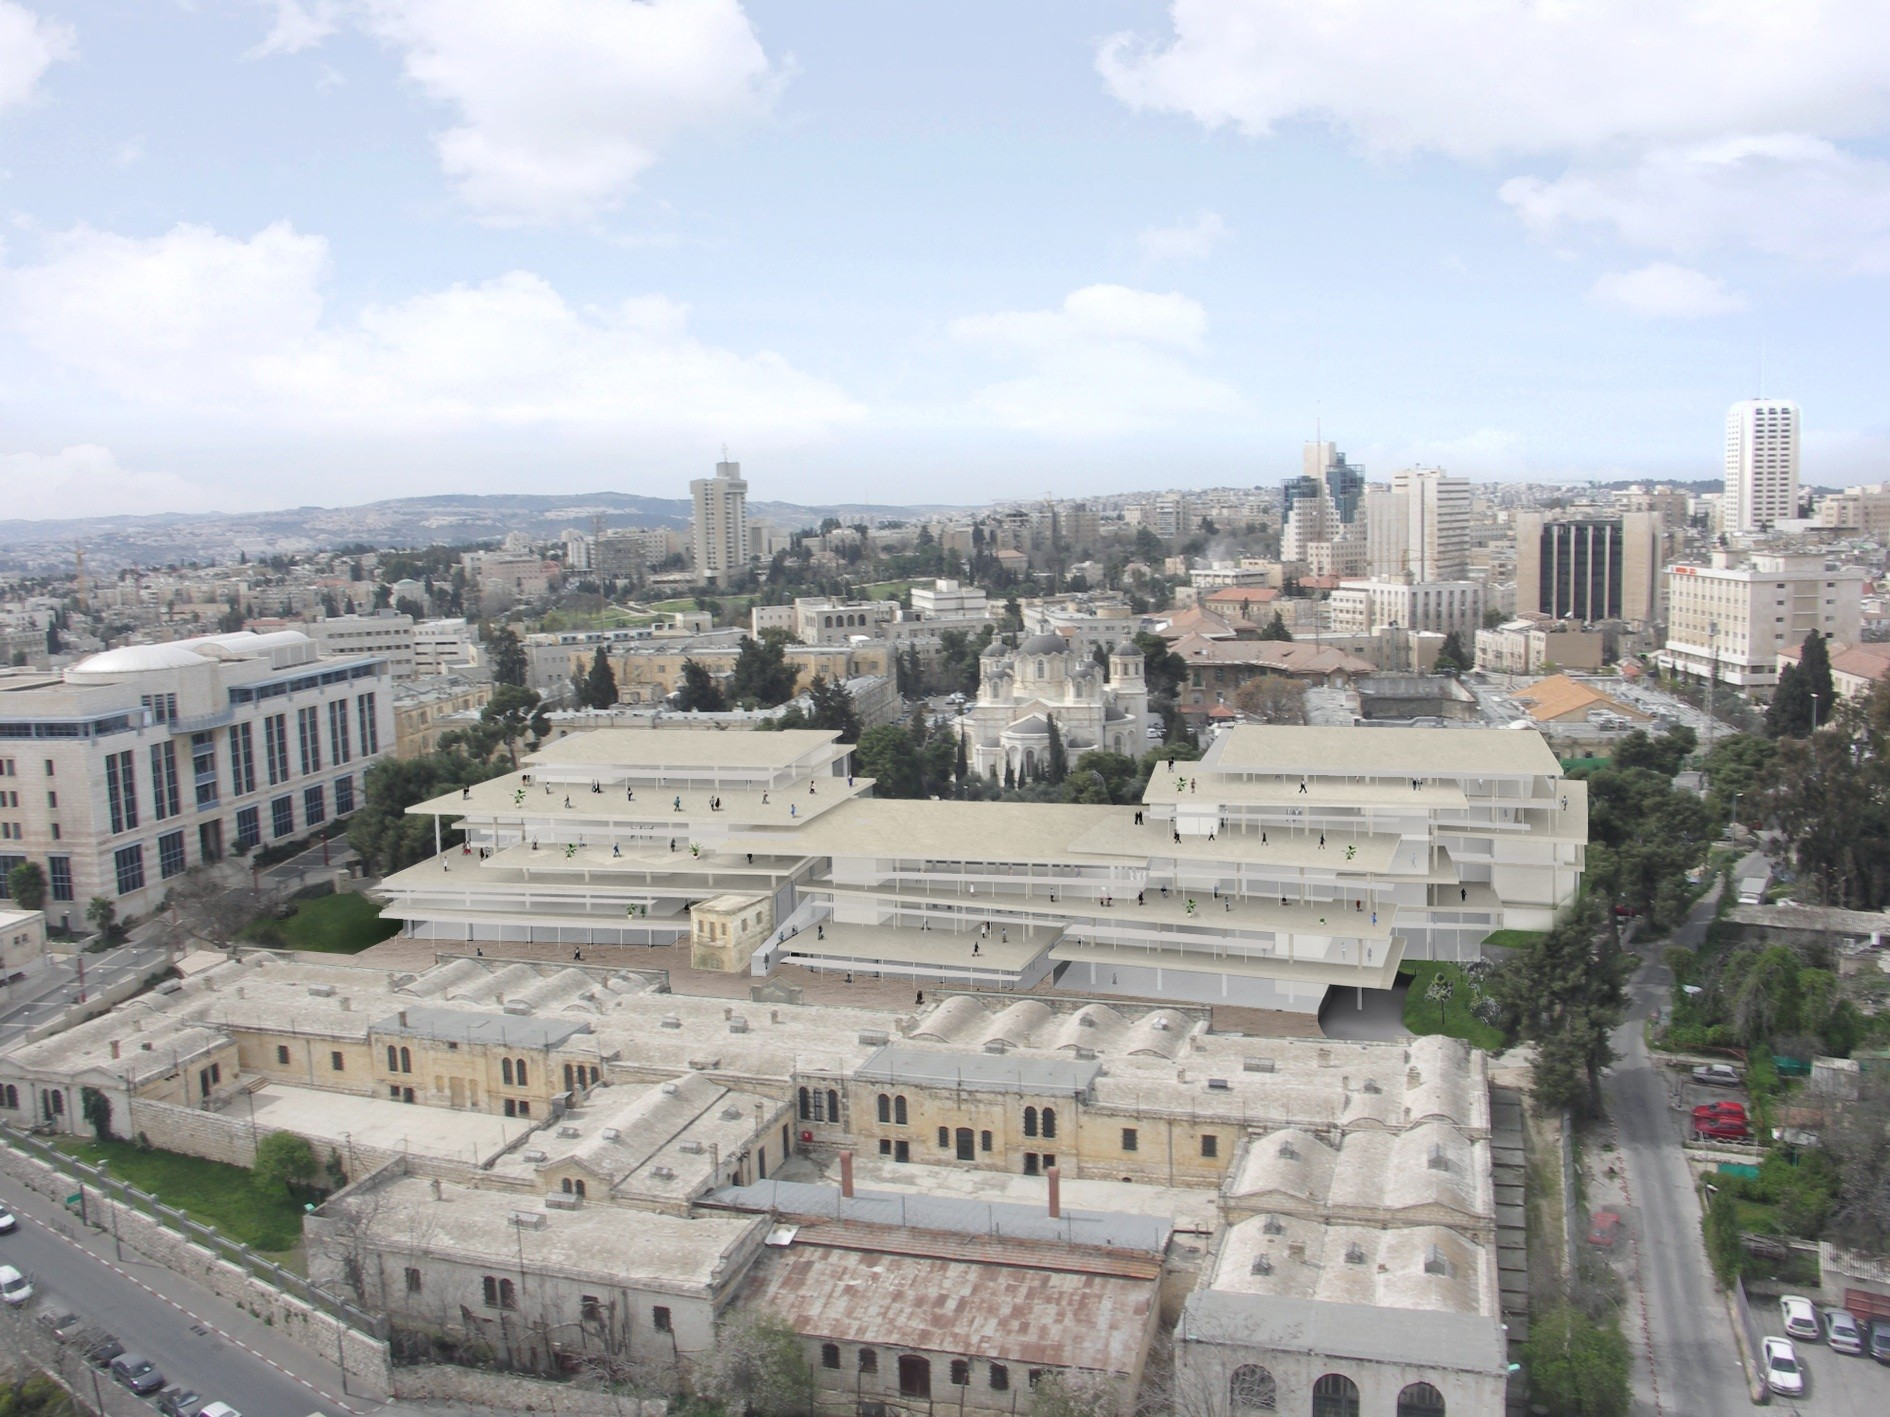 SANAA Unveils Plans for New Downtown Arts & Design Campus in Jerusalem, © SANAA